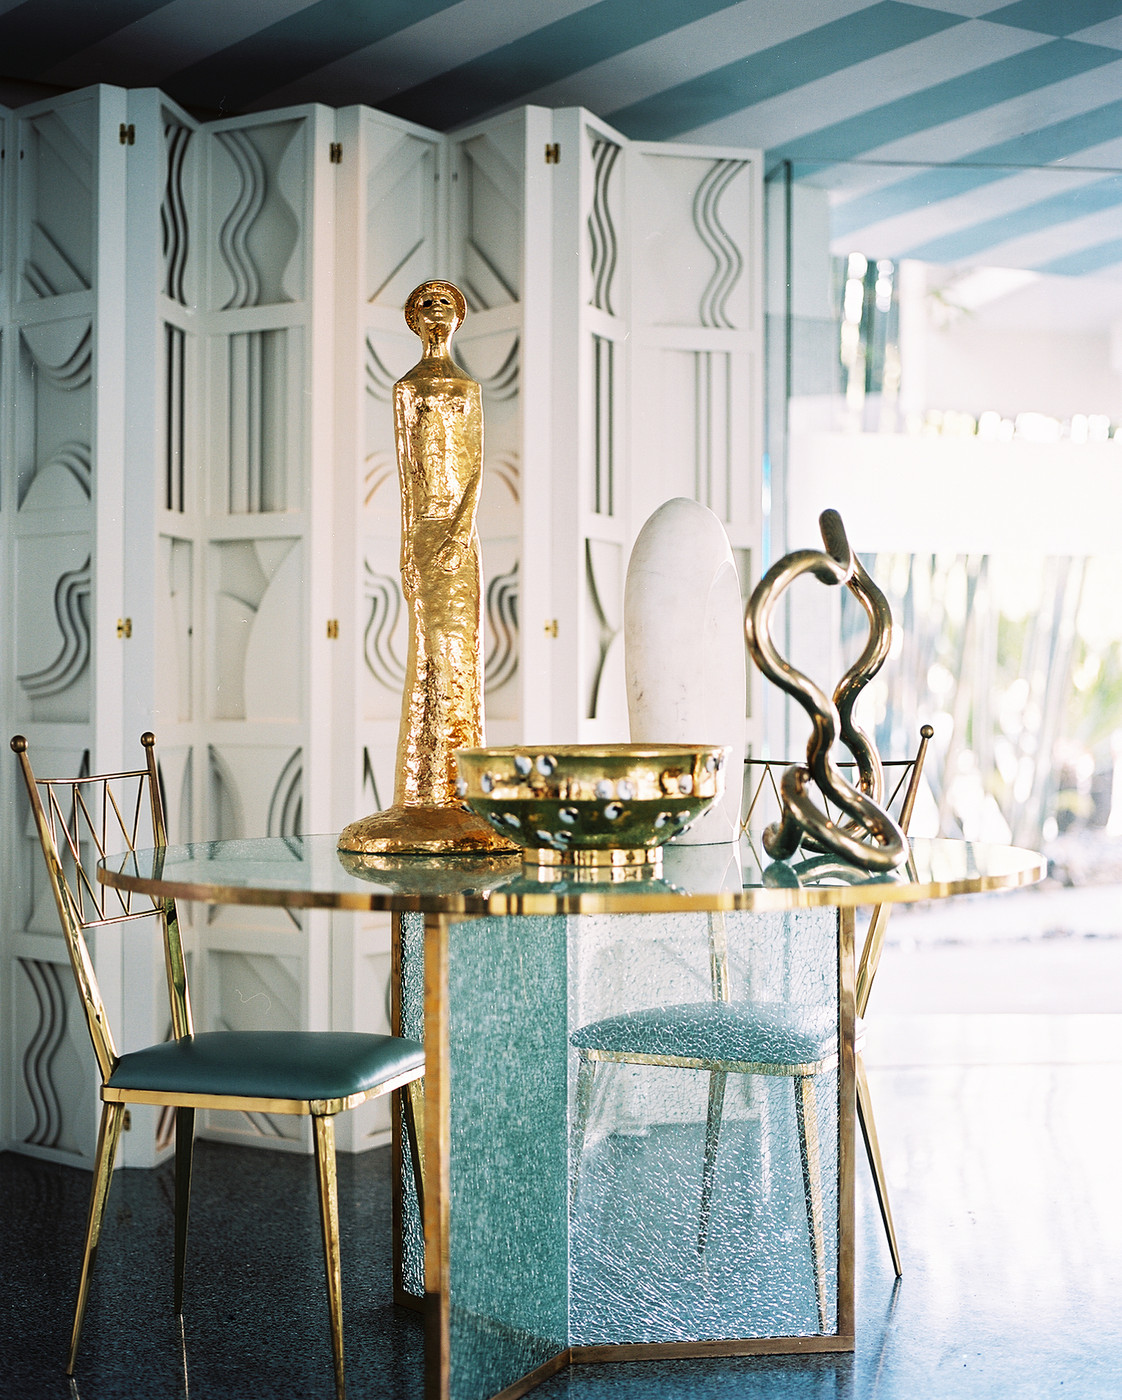 How to give elegance to dining rooms with kelly wearstler style for Kelly wearstler interior design